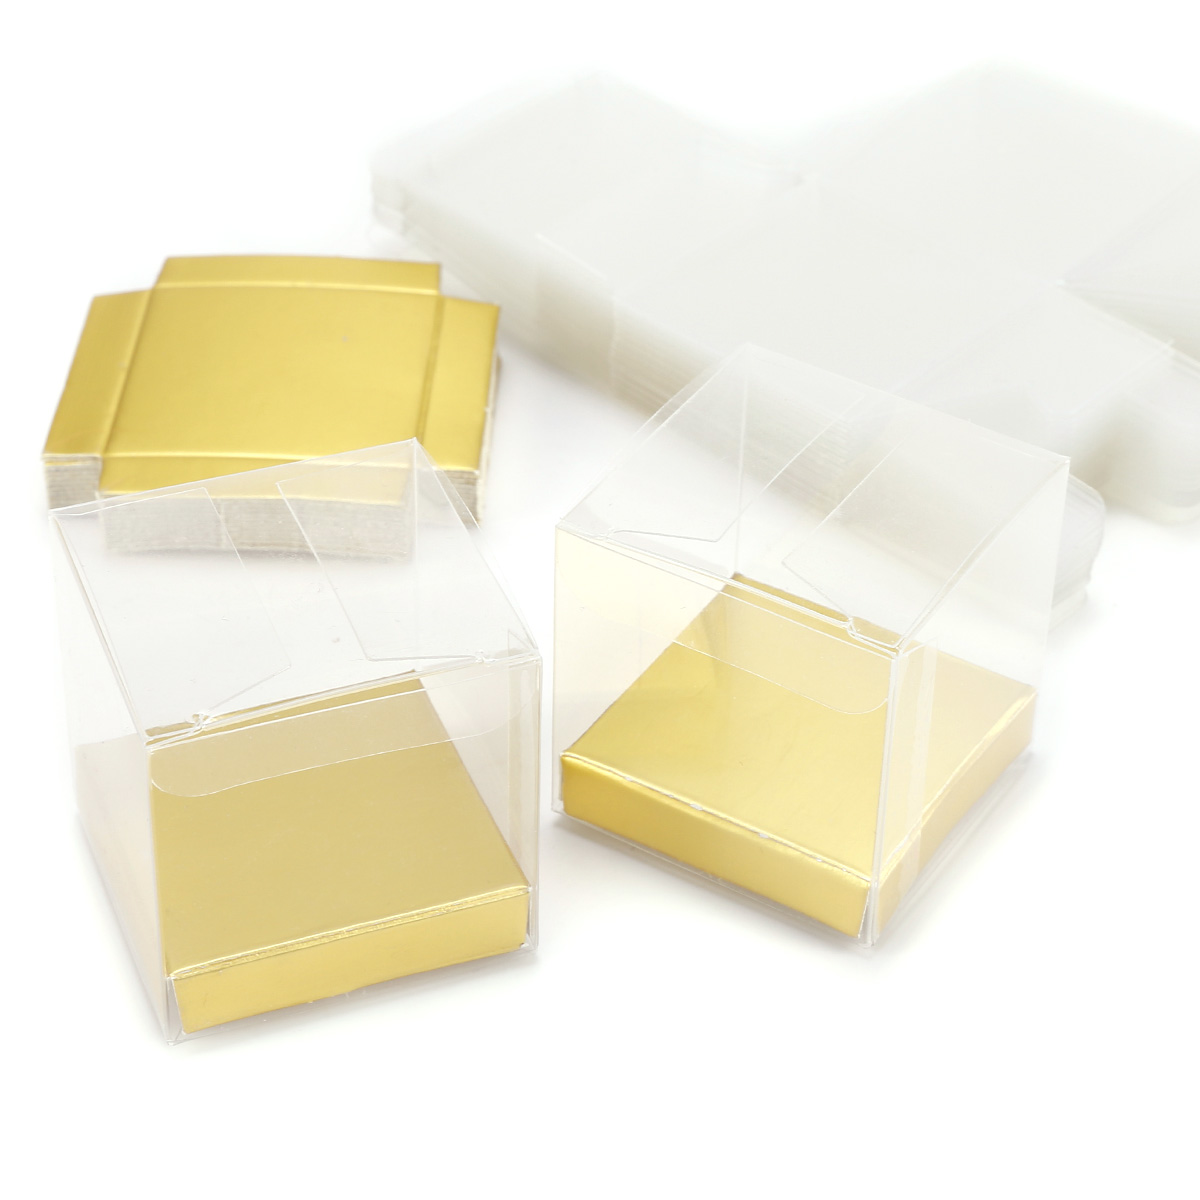 Clear Plastic Favor Boxes Uk: Really useful clear box litres hobbycraft.